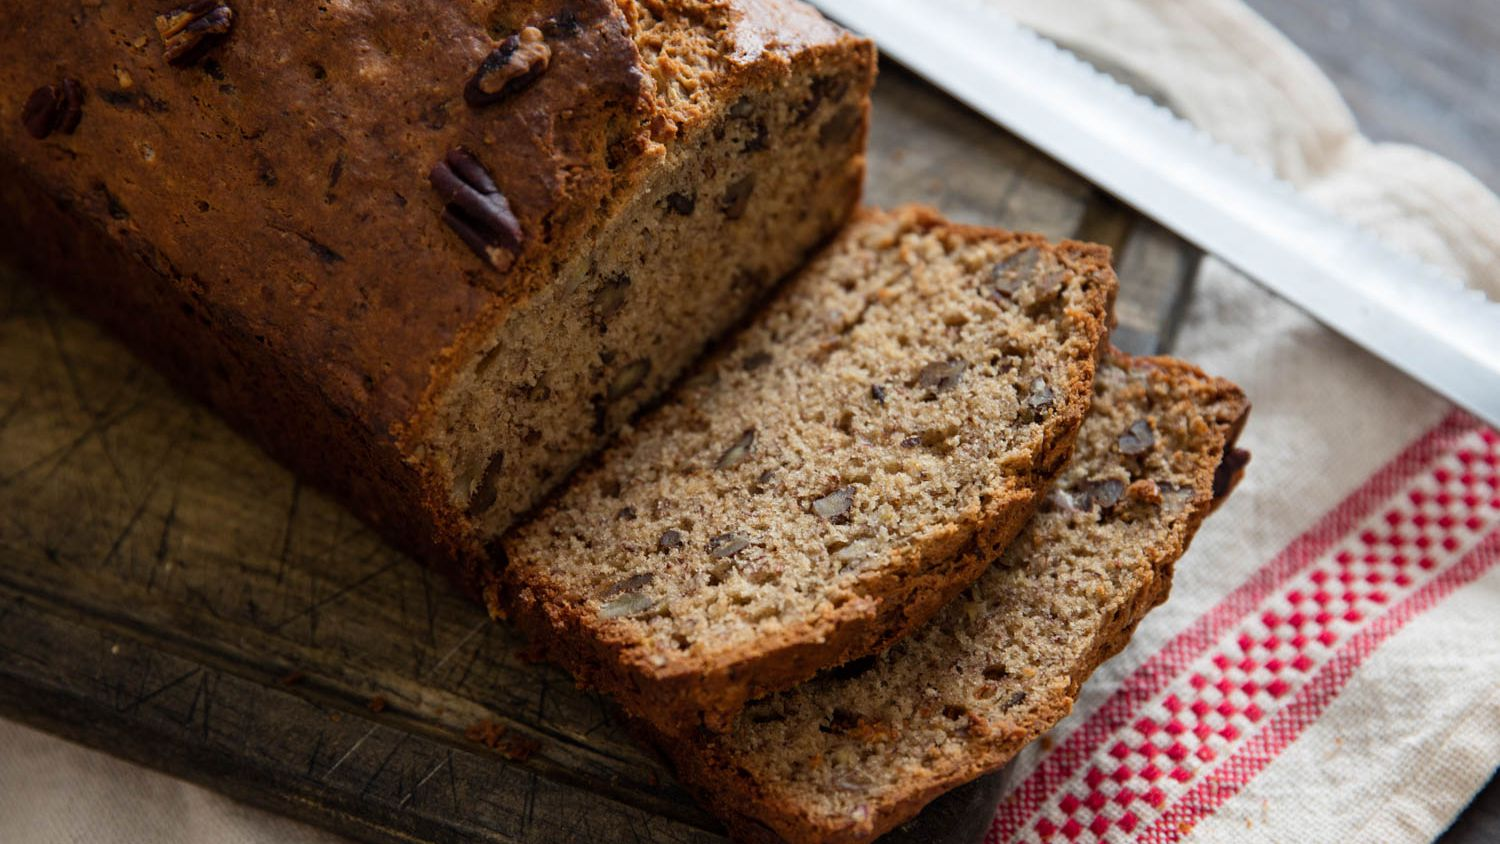 opt aboutcom coeus resources content migration serious eats seriouseats.com recipes images 2016 09 20160826 banana bread vicky wasik 17 961f09f26aa9434aa9695aa7d01f3253